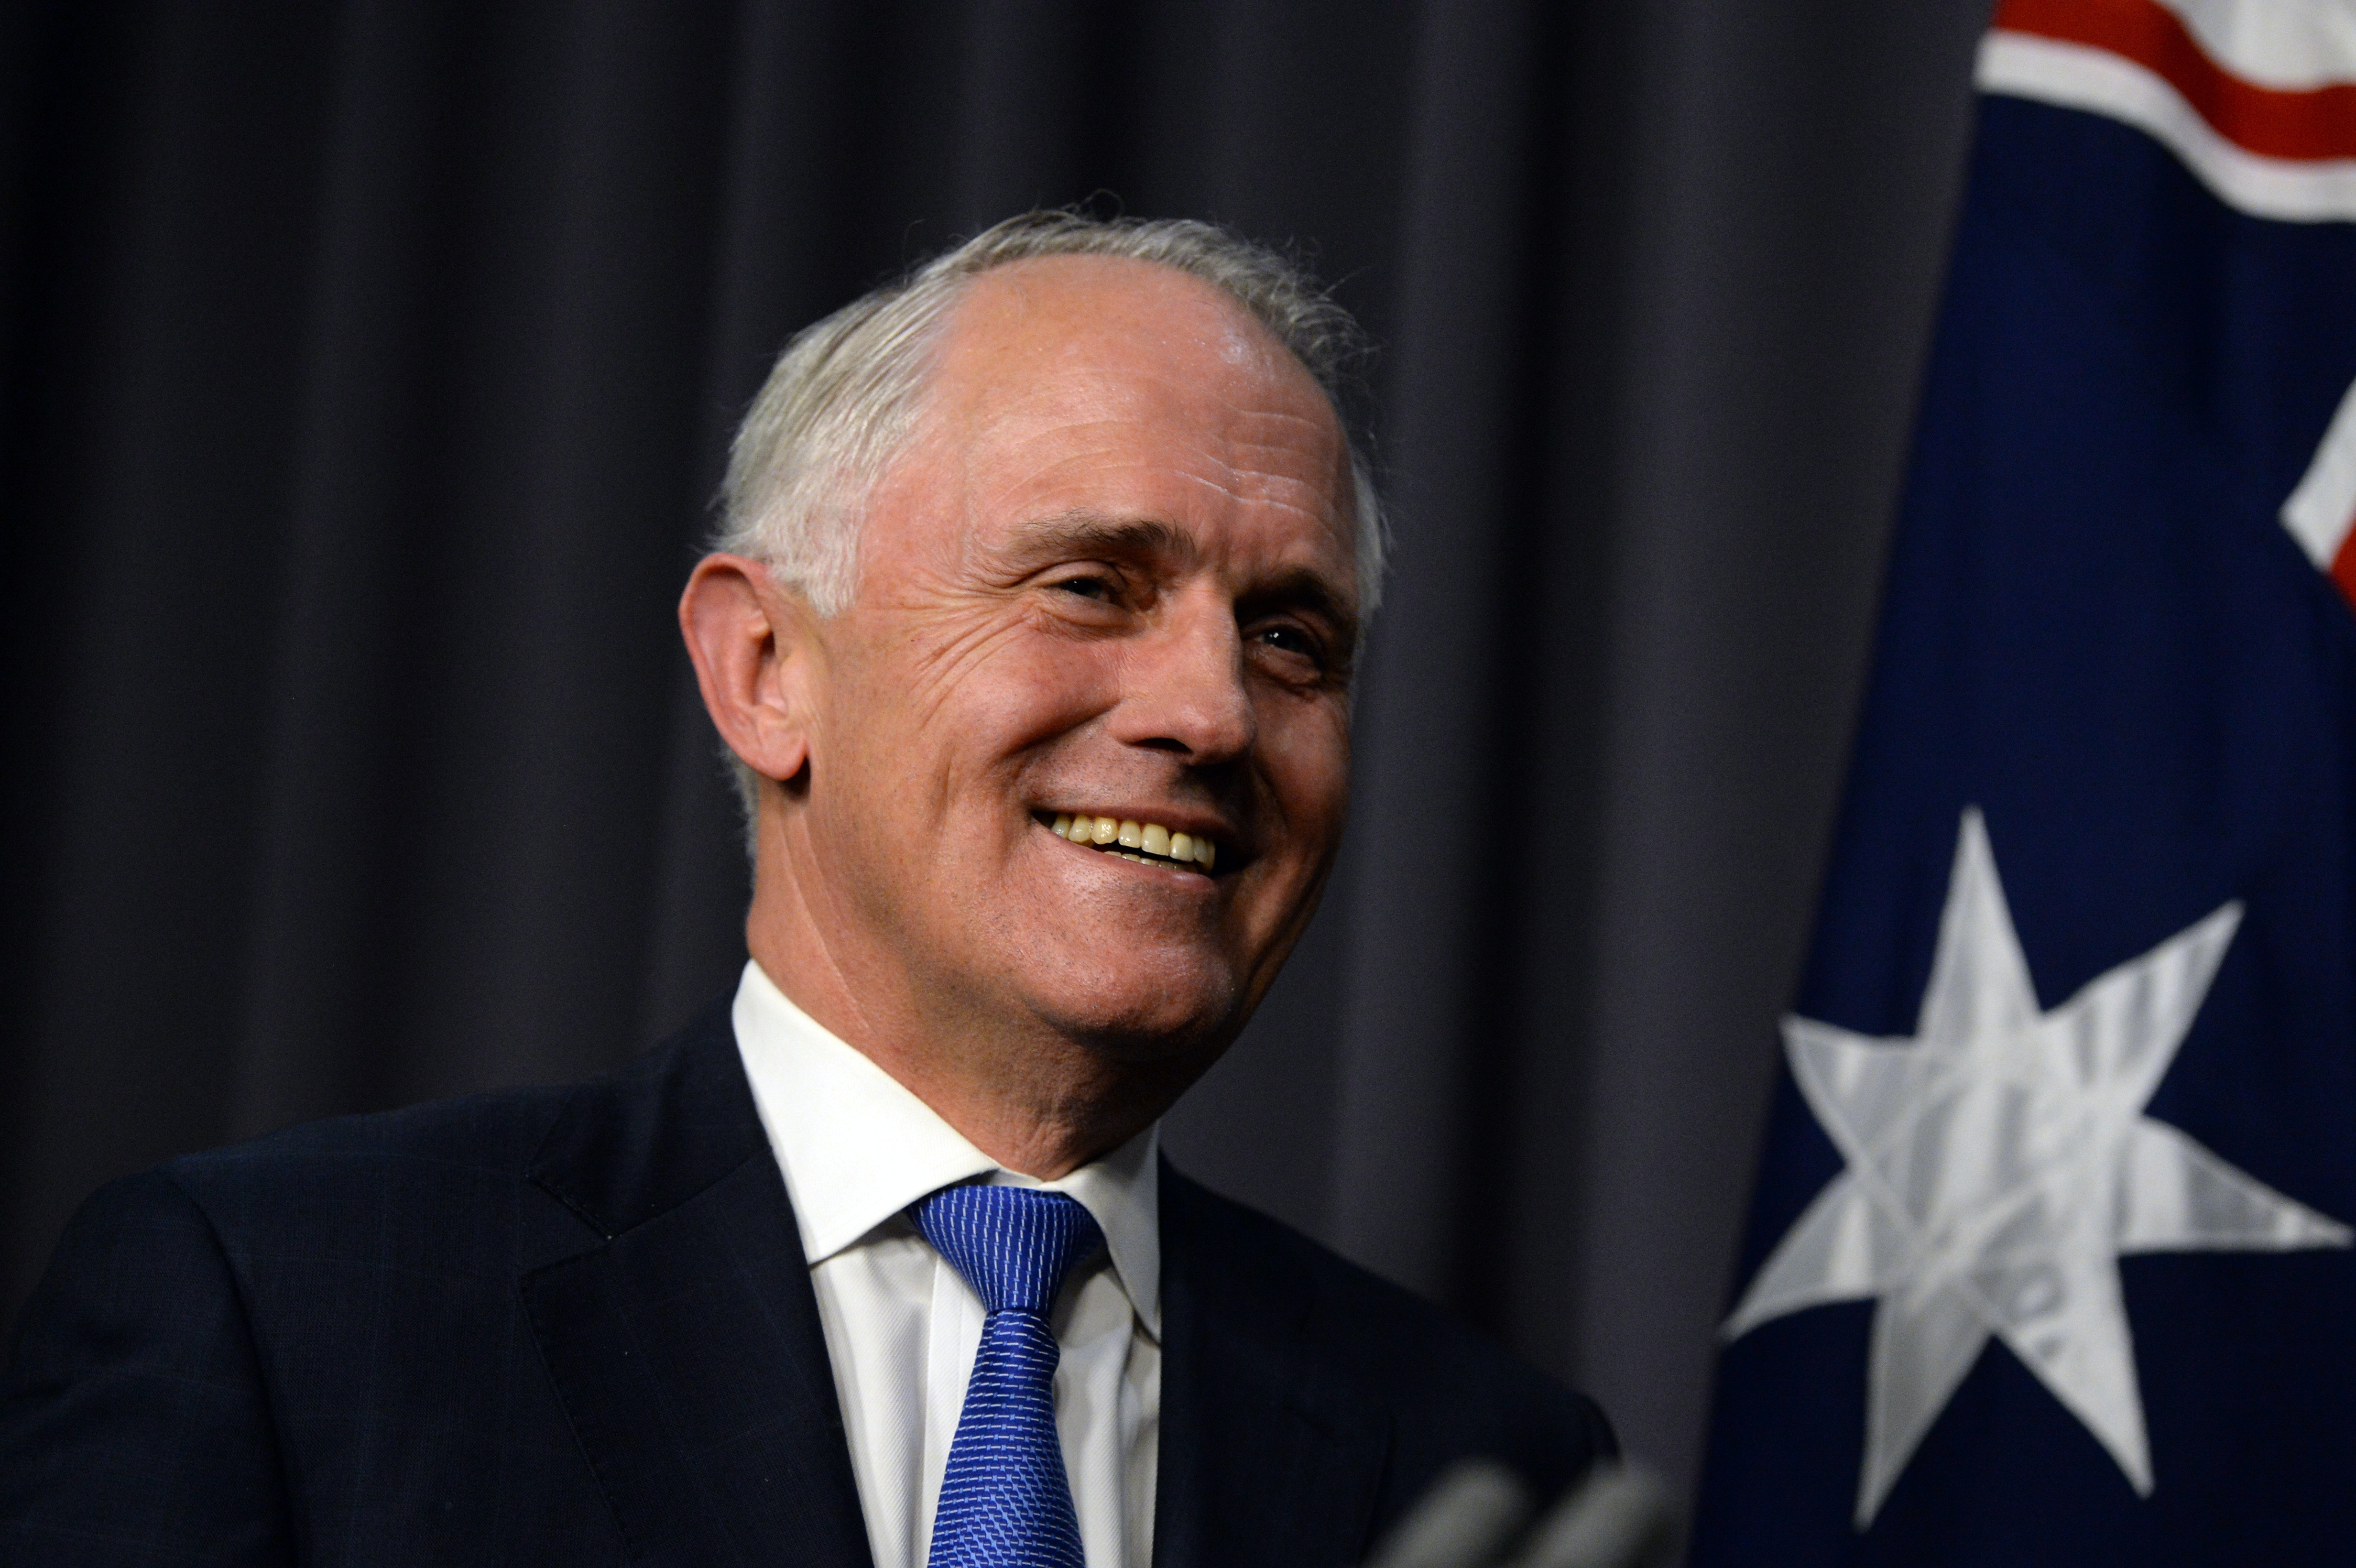 Turnbull inherits an economy battered by global headwinds